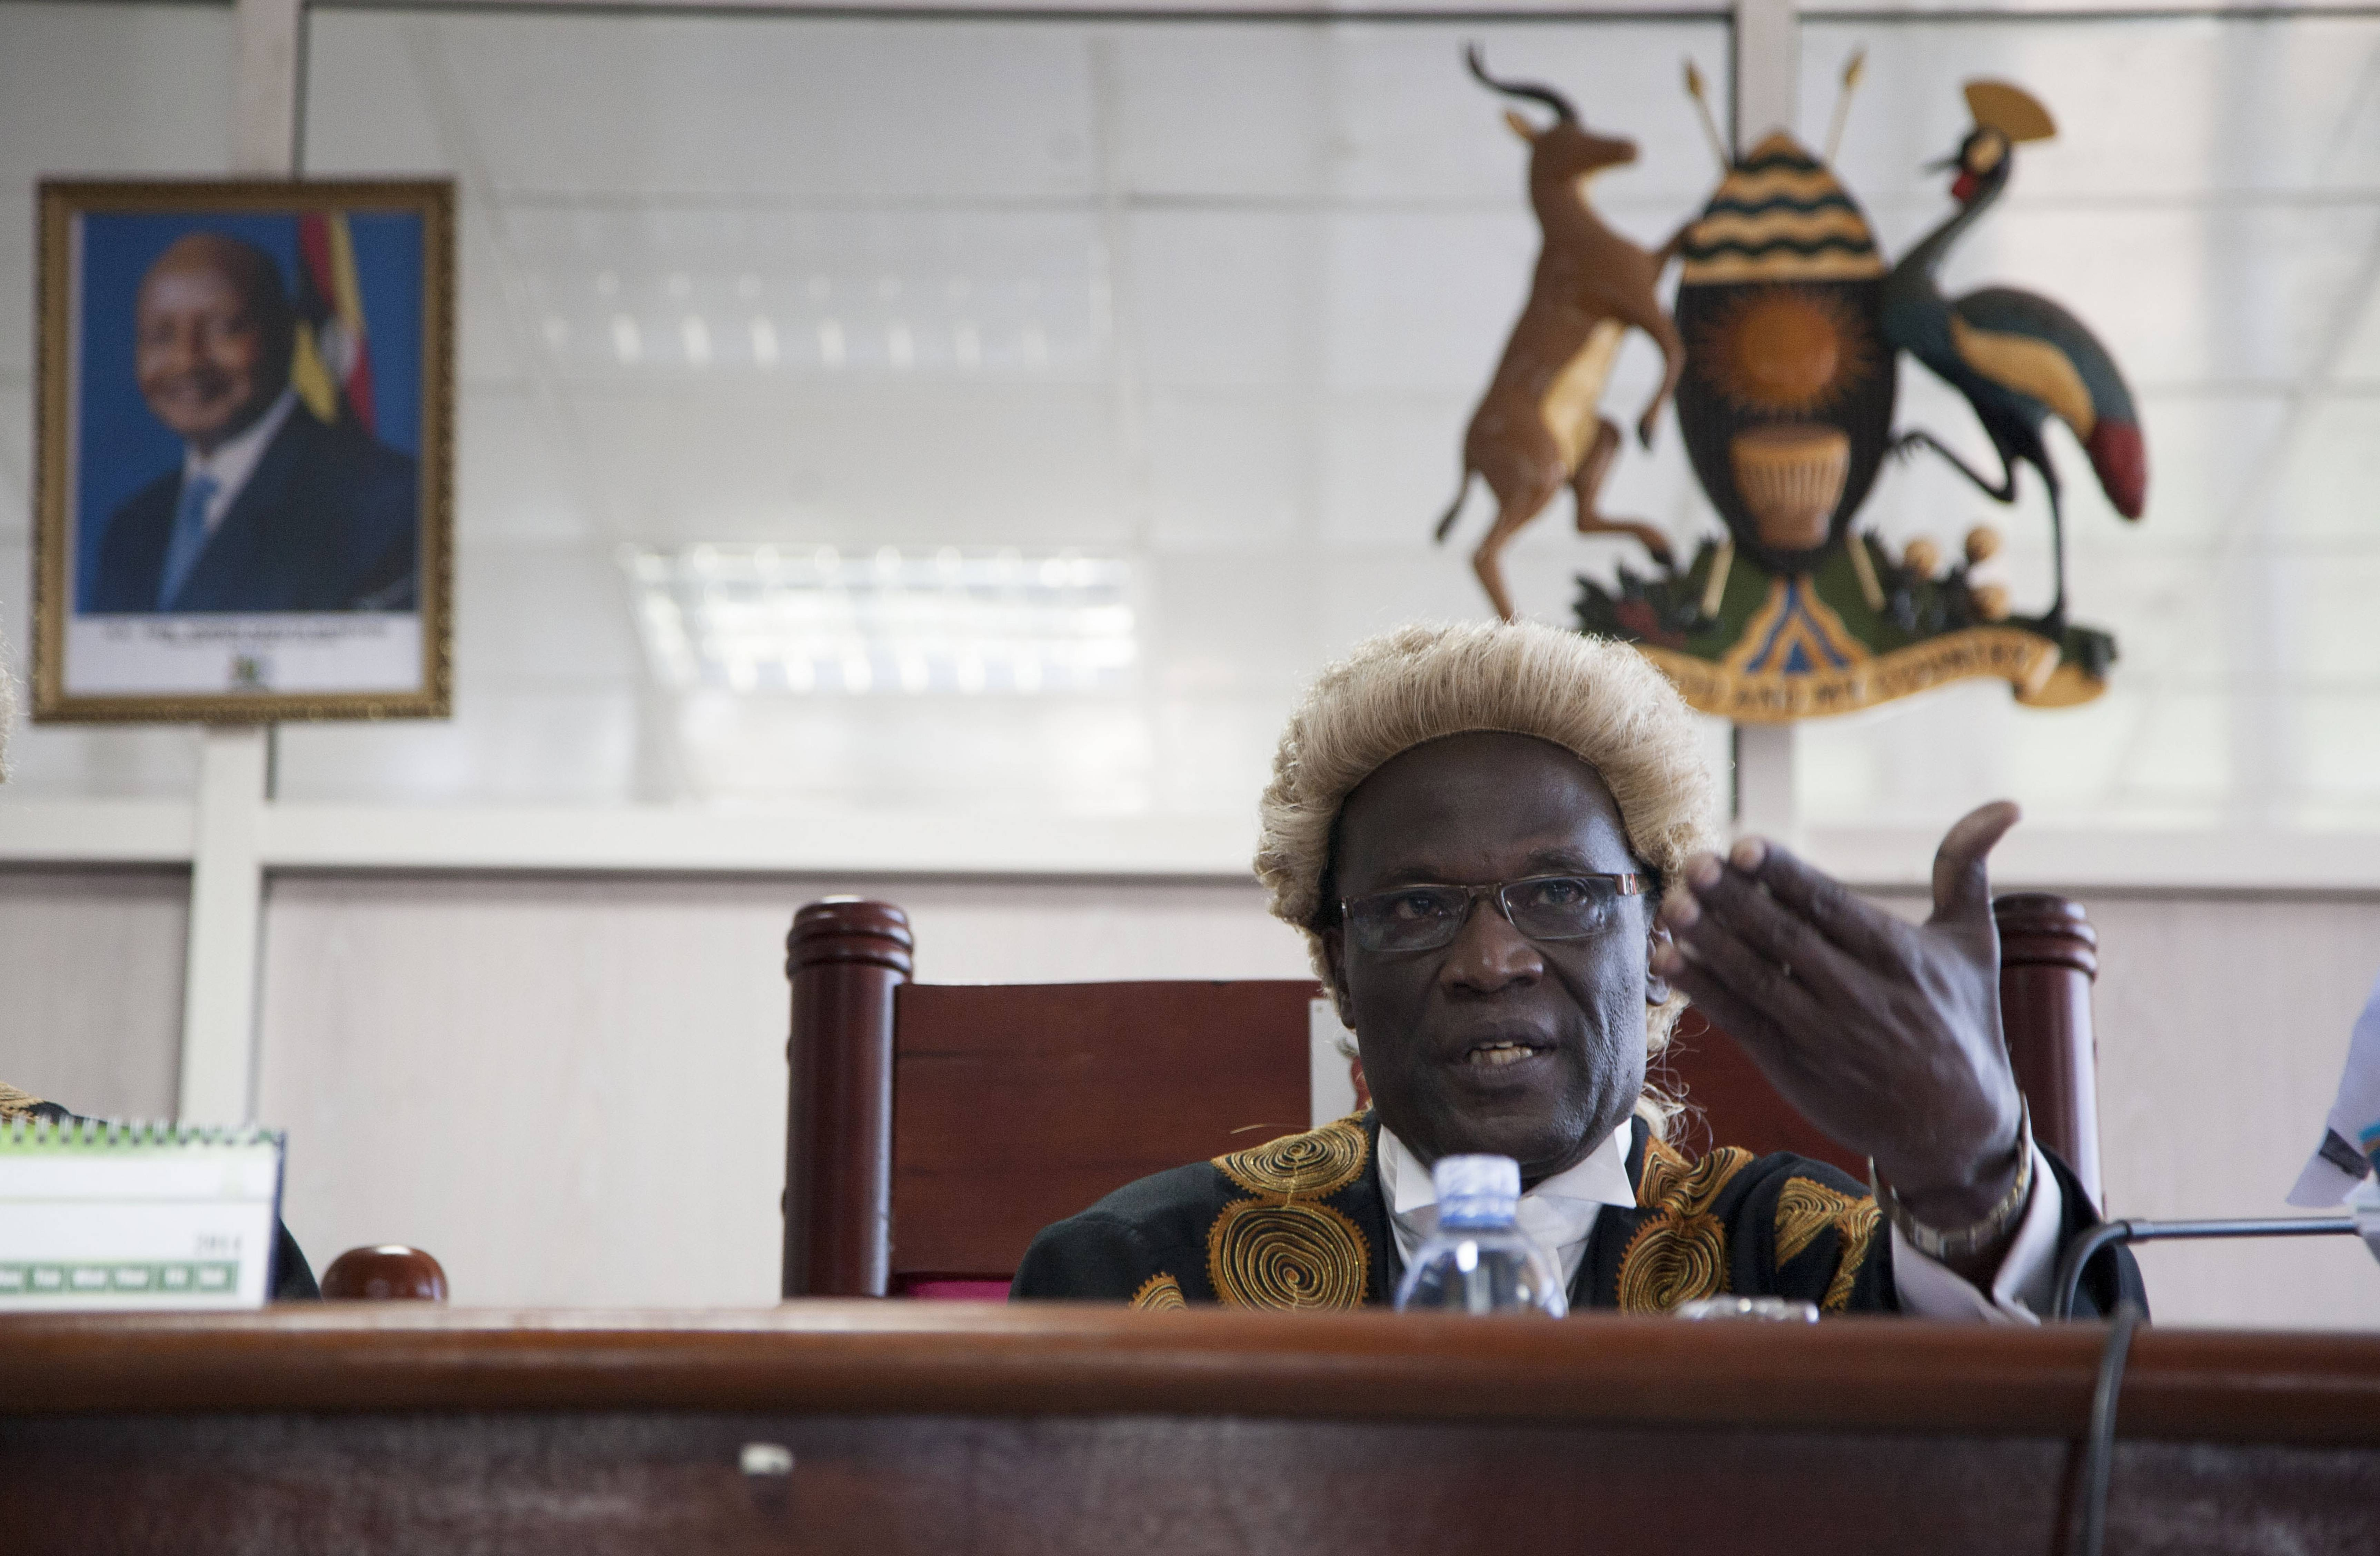 In this Aug. 1 photo, a picture of Uganda's president Yoweri Museveni hangs on the wall, left, as Judge Stephen Kavuma reads the verdict invalidating an anti-gay bill signed into law earlier this year, at the Constitutional court in Kampala, Uganda. When a Ugandan court overturned the country's Anti-Homosexuality Act this month, rights activists worldwide claimed a victory - but not gay Ugandans who fled persecution to live in a refugee camp in neighboring Kenya.